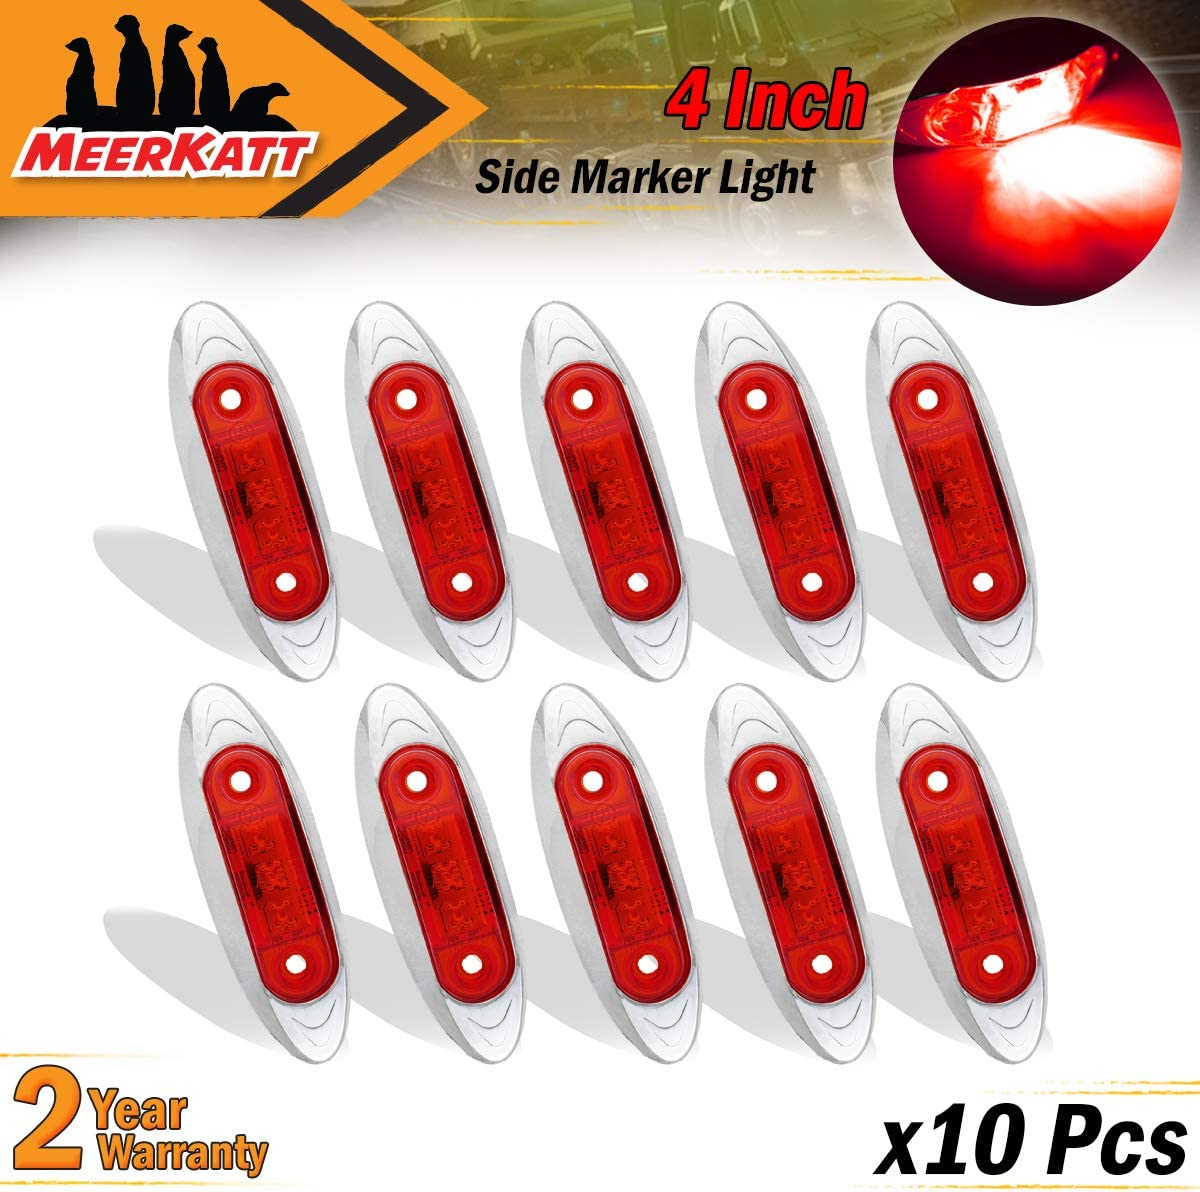 2.5 Inch Small Oval Amber LED Sealed Marker Clearance Bulb Indicator Light Universal Surface Mount Car Truck Trailer ATV Boat Camper Jeep Van Chrome Bezel 12v DC Waterproof QR12 Pack of 10 Meerkatt